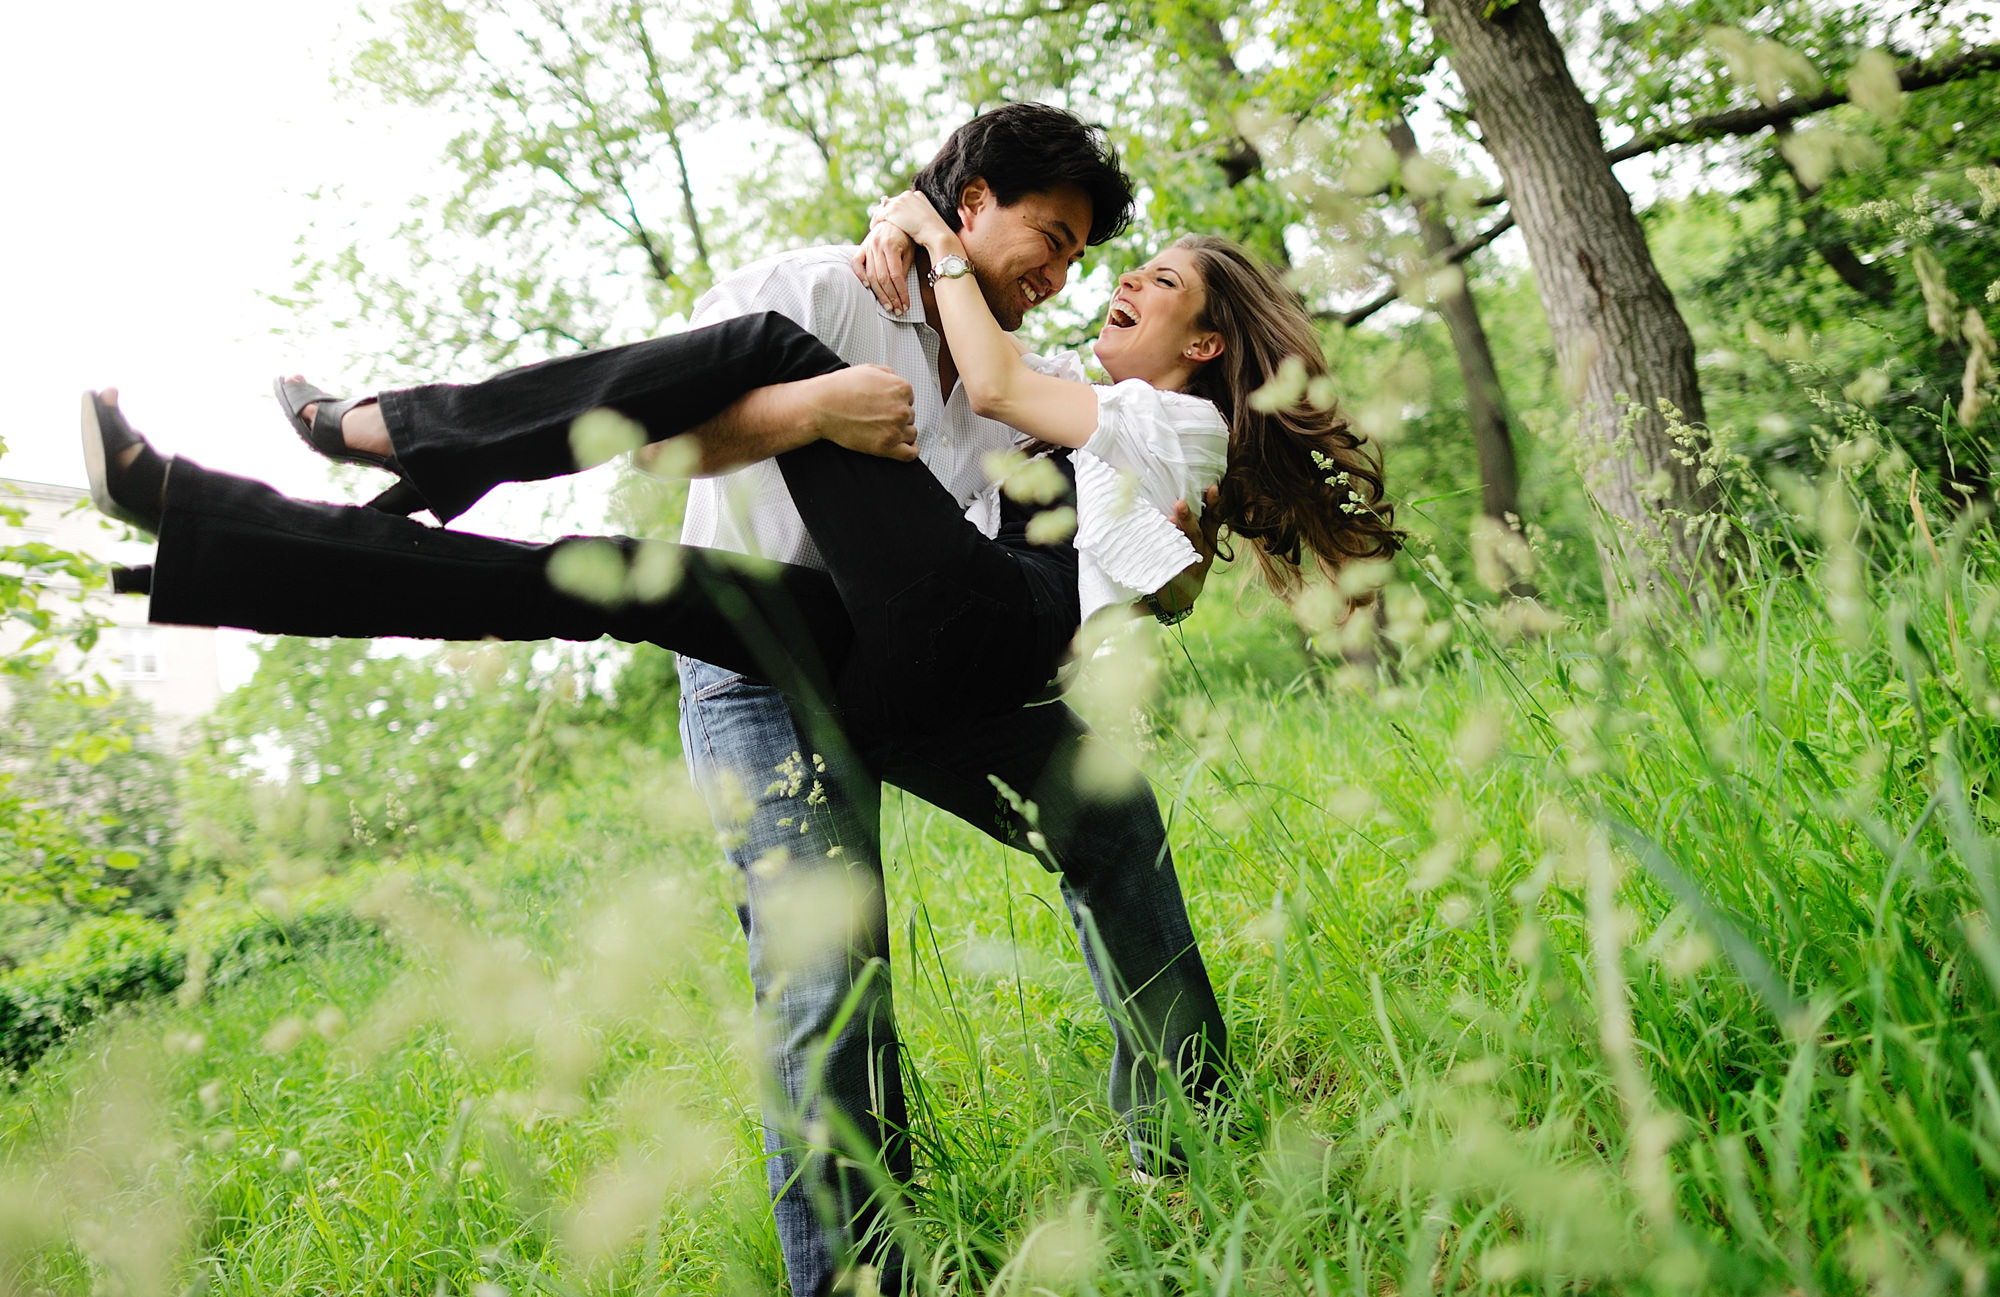 couple-engagement-portrait-groom-carrying-bride-in-field-worlds-best-wedding-photos-the-brenizers-new-york-wedding-photographers